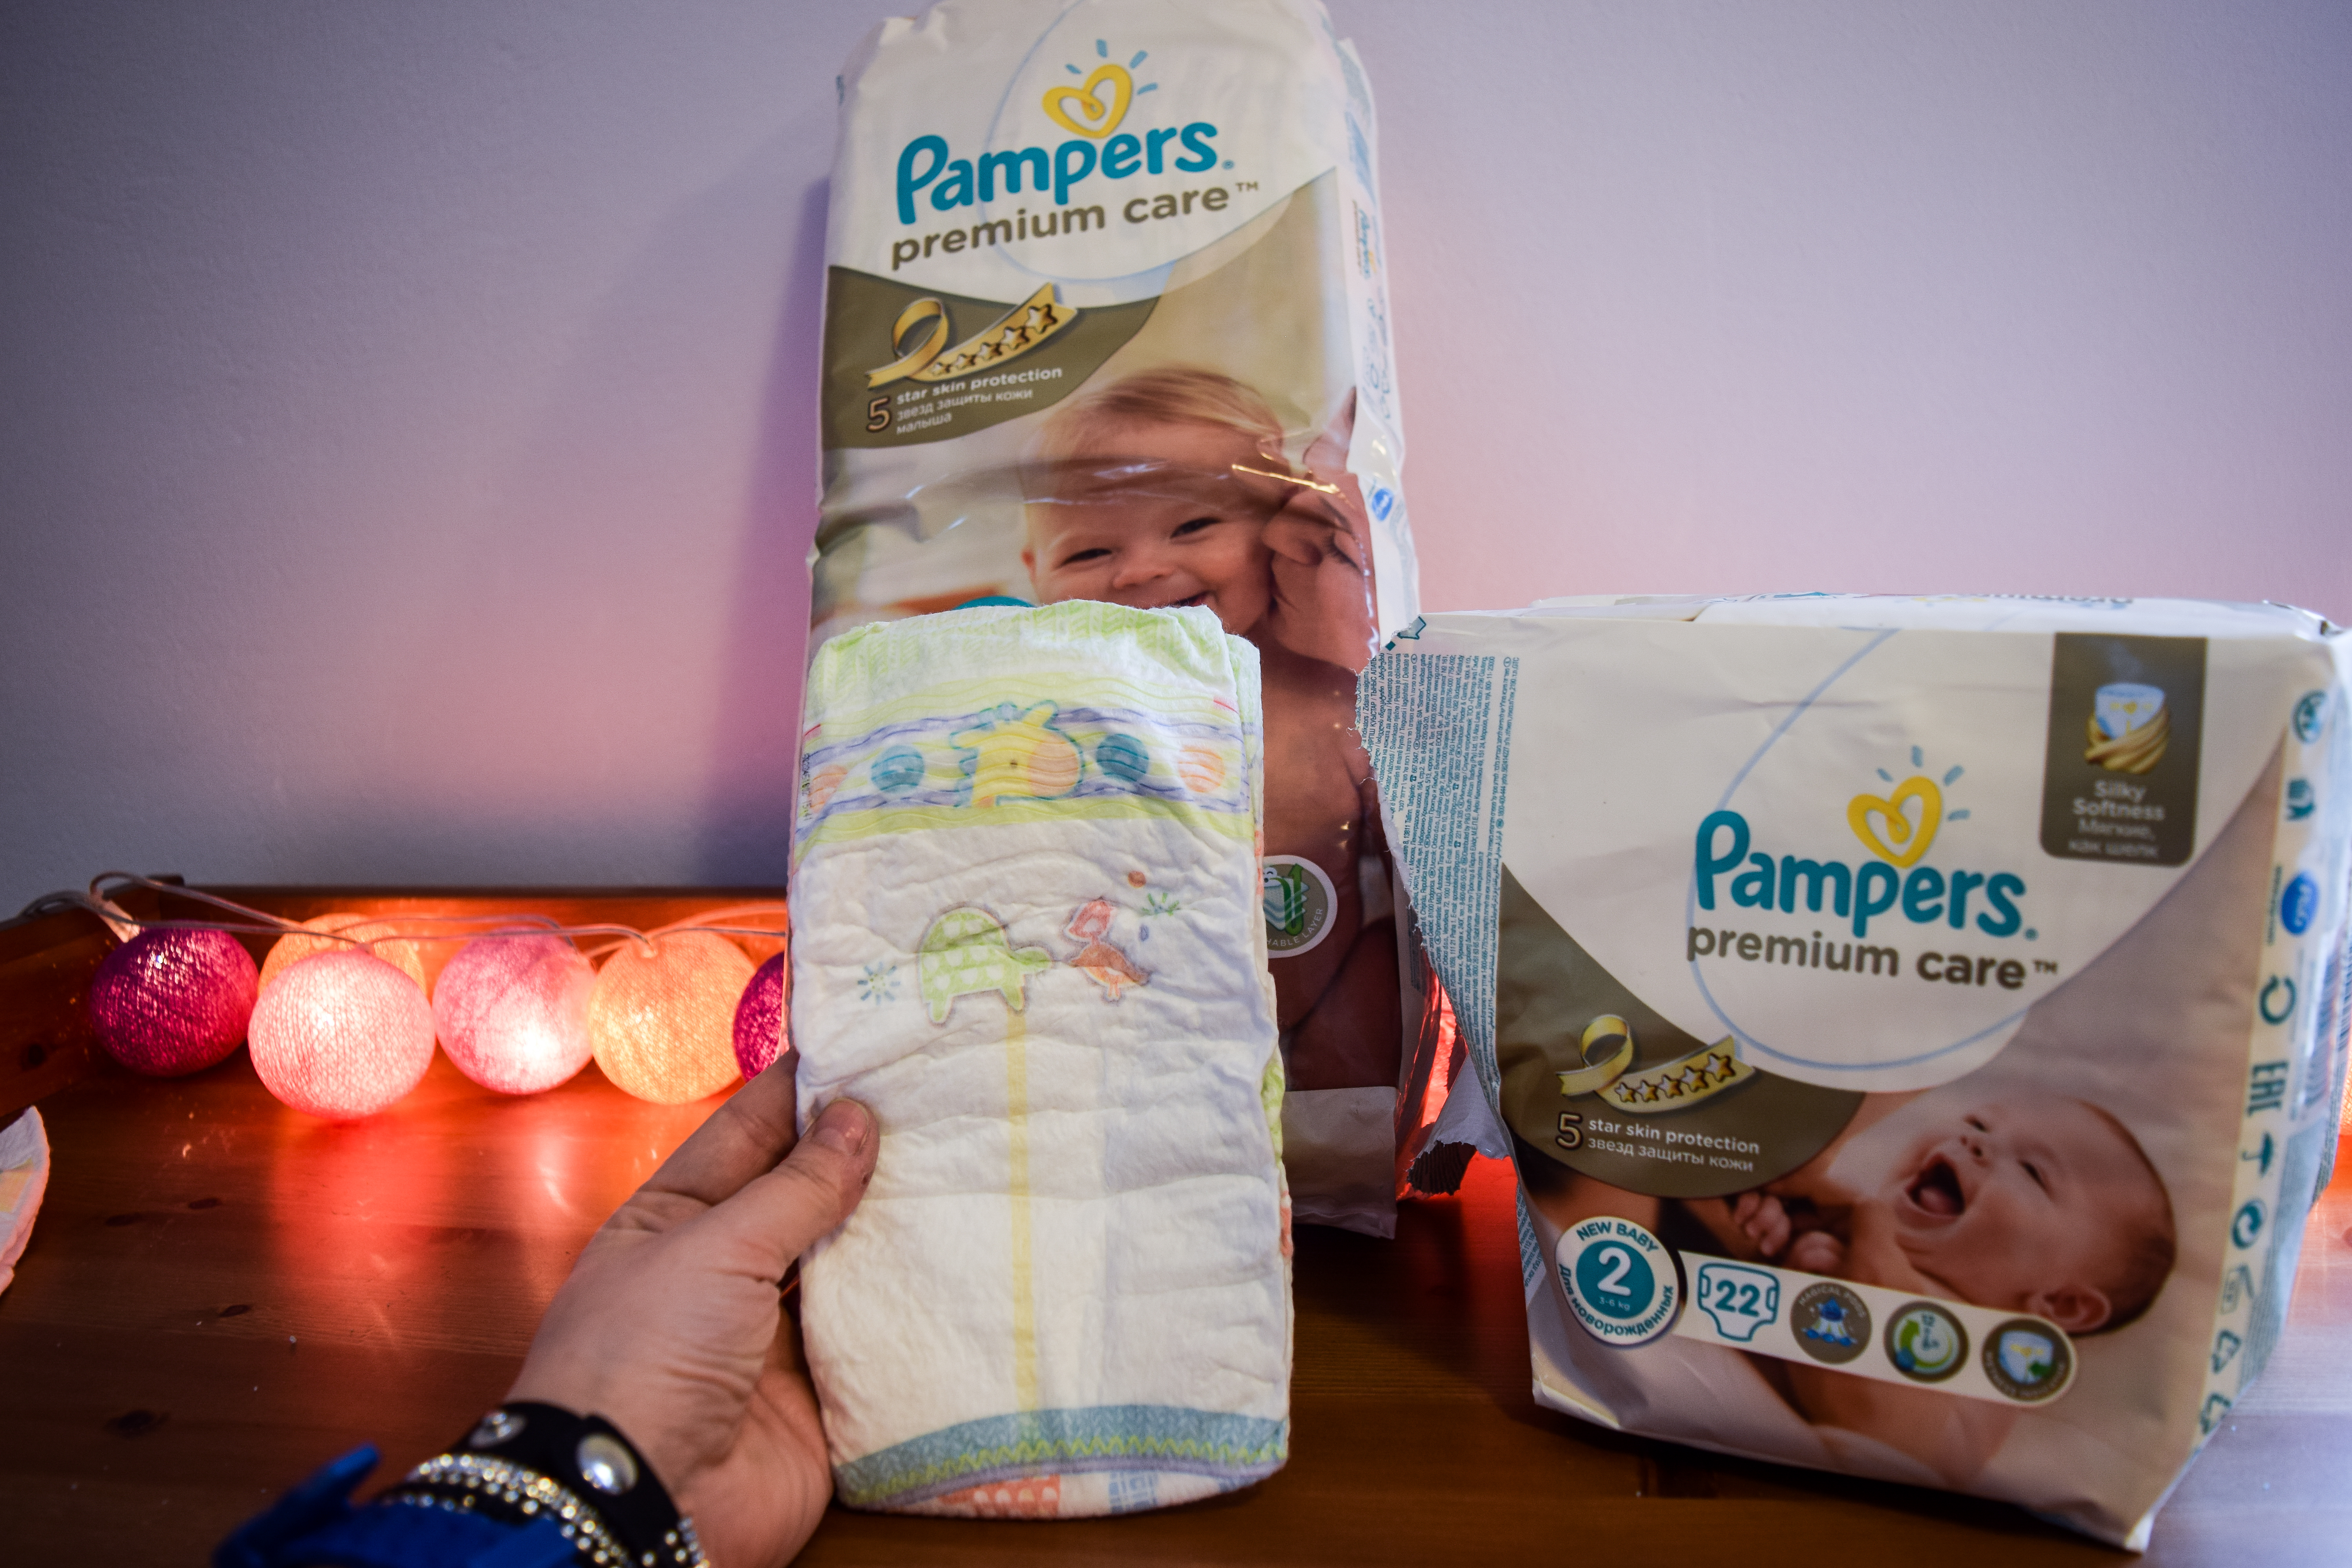 pampers (6 of 8)